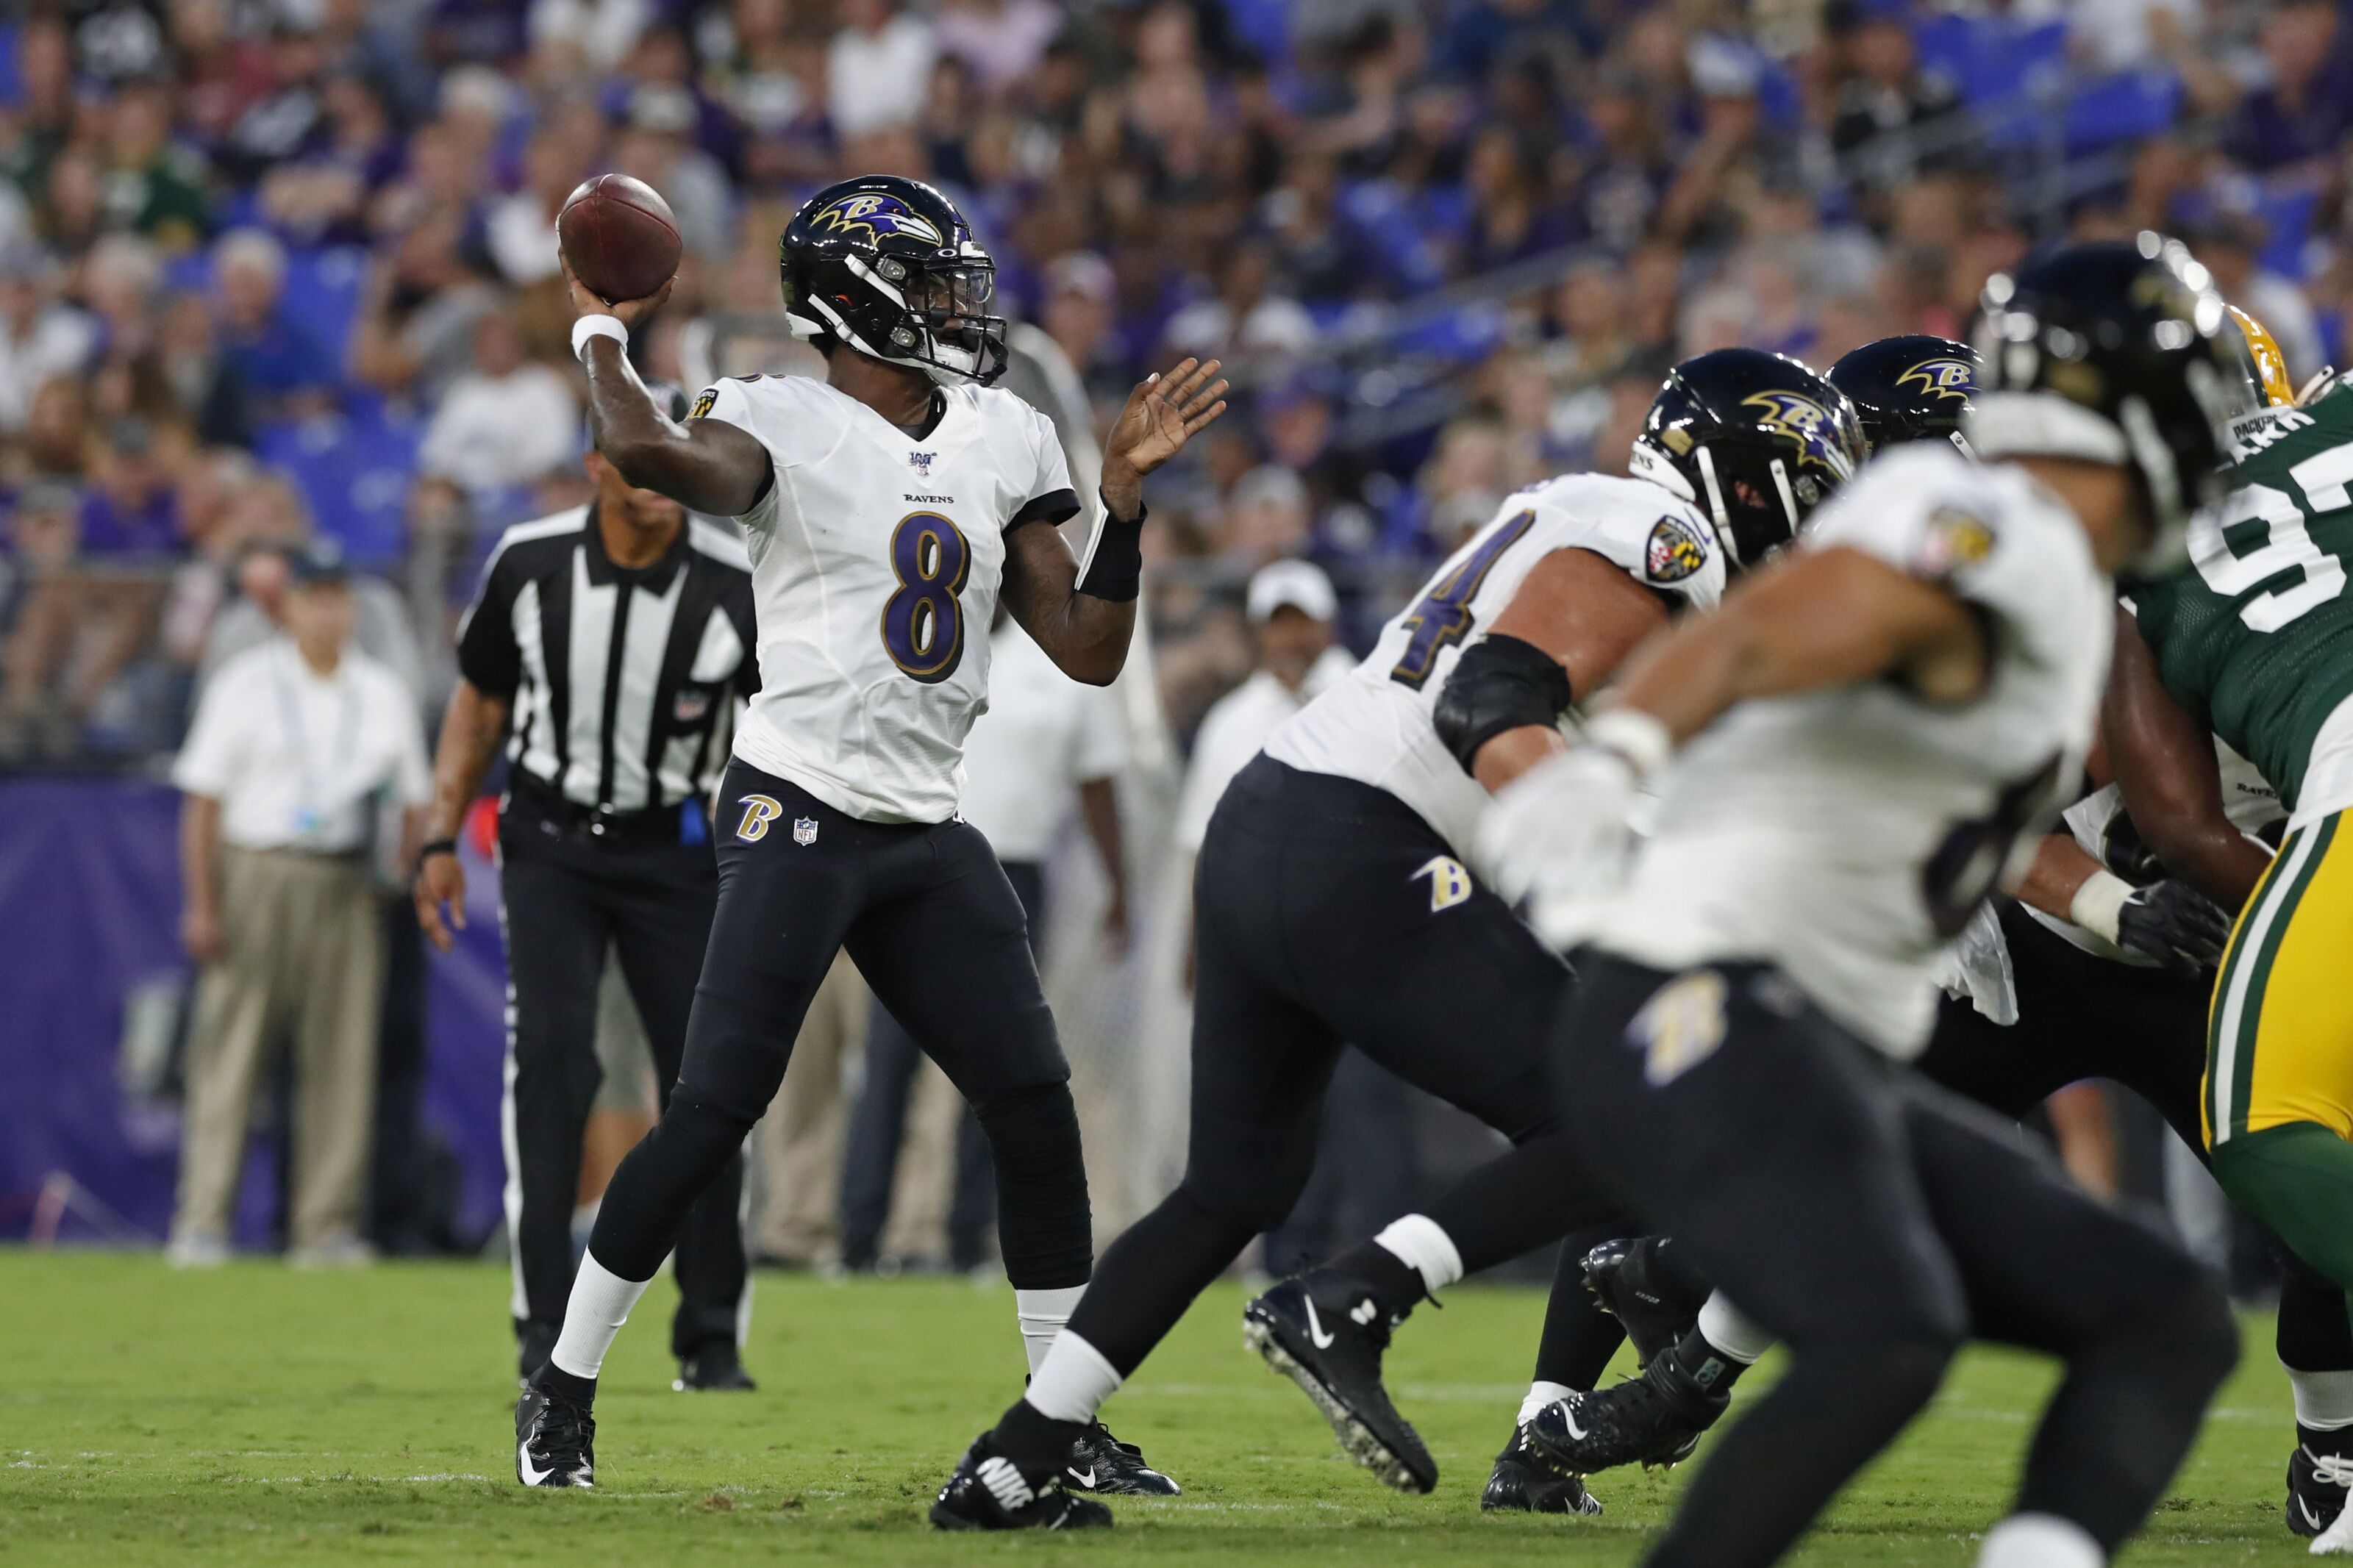 Fantasy football: Where should you draft Lamar Jackson?